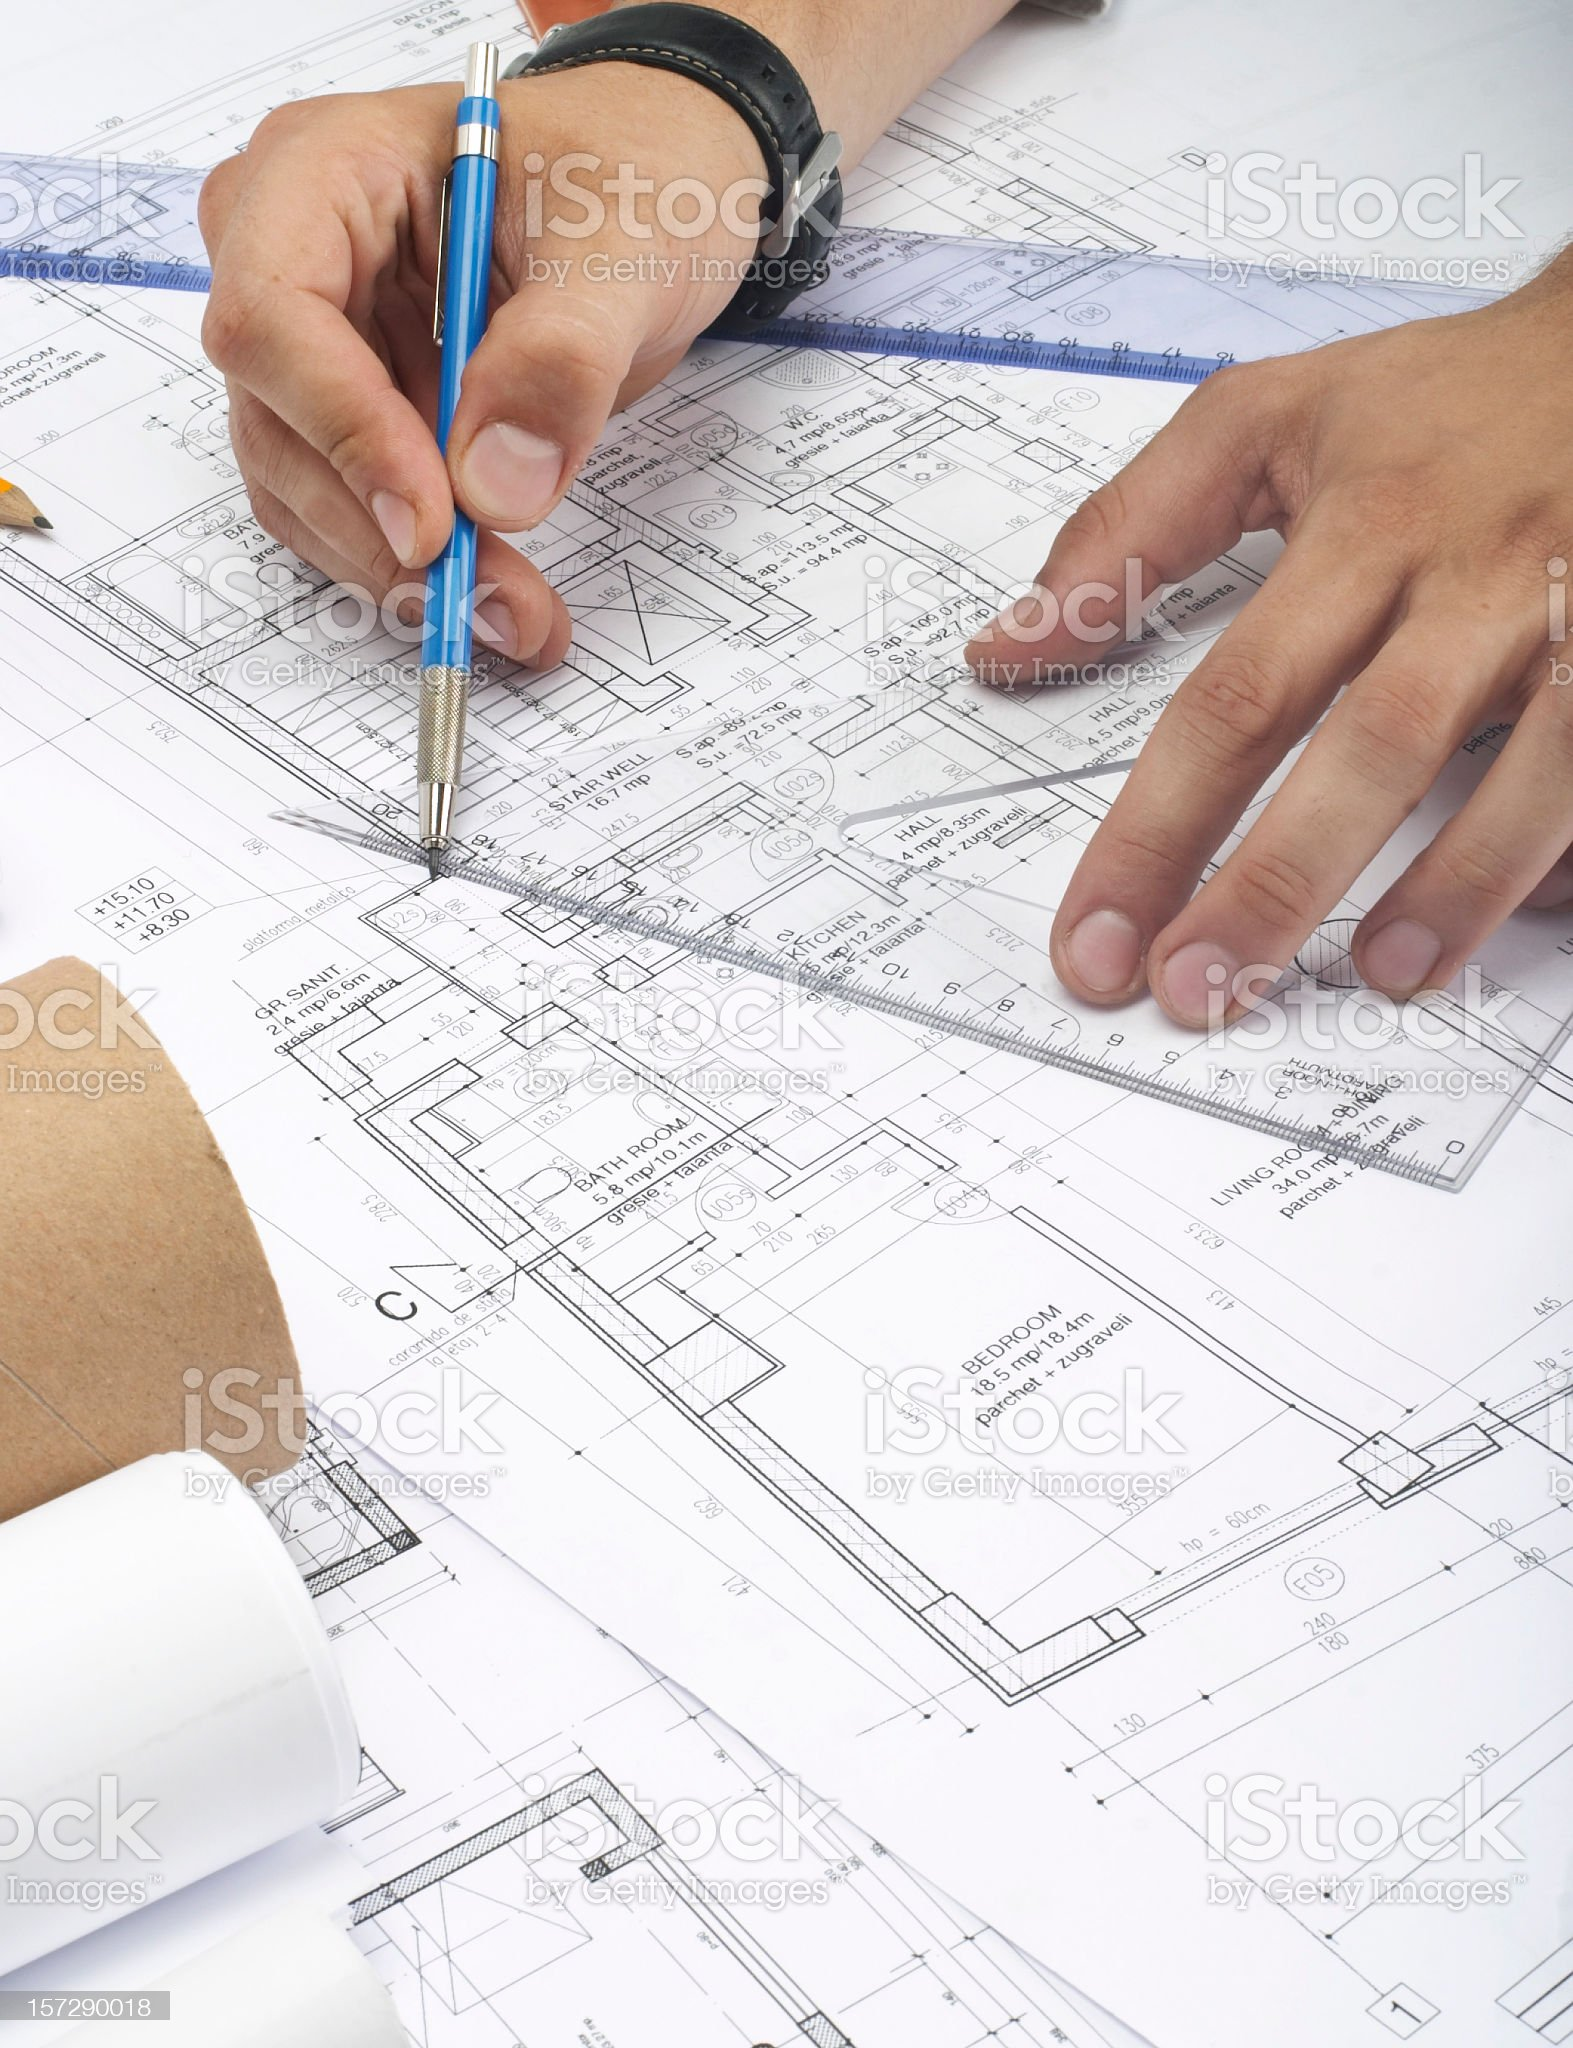 Pair of hands working on a blueprint using a ruler royalty-free stock photo